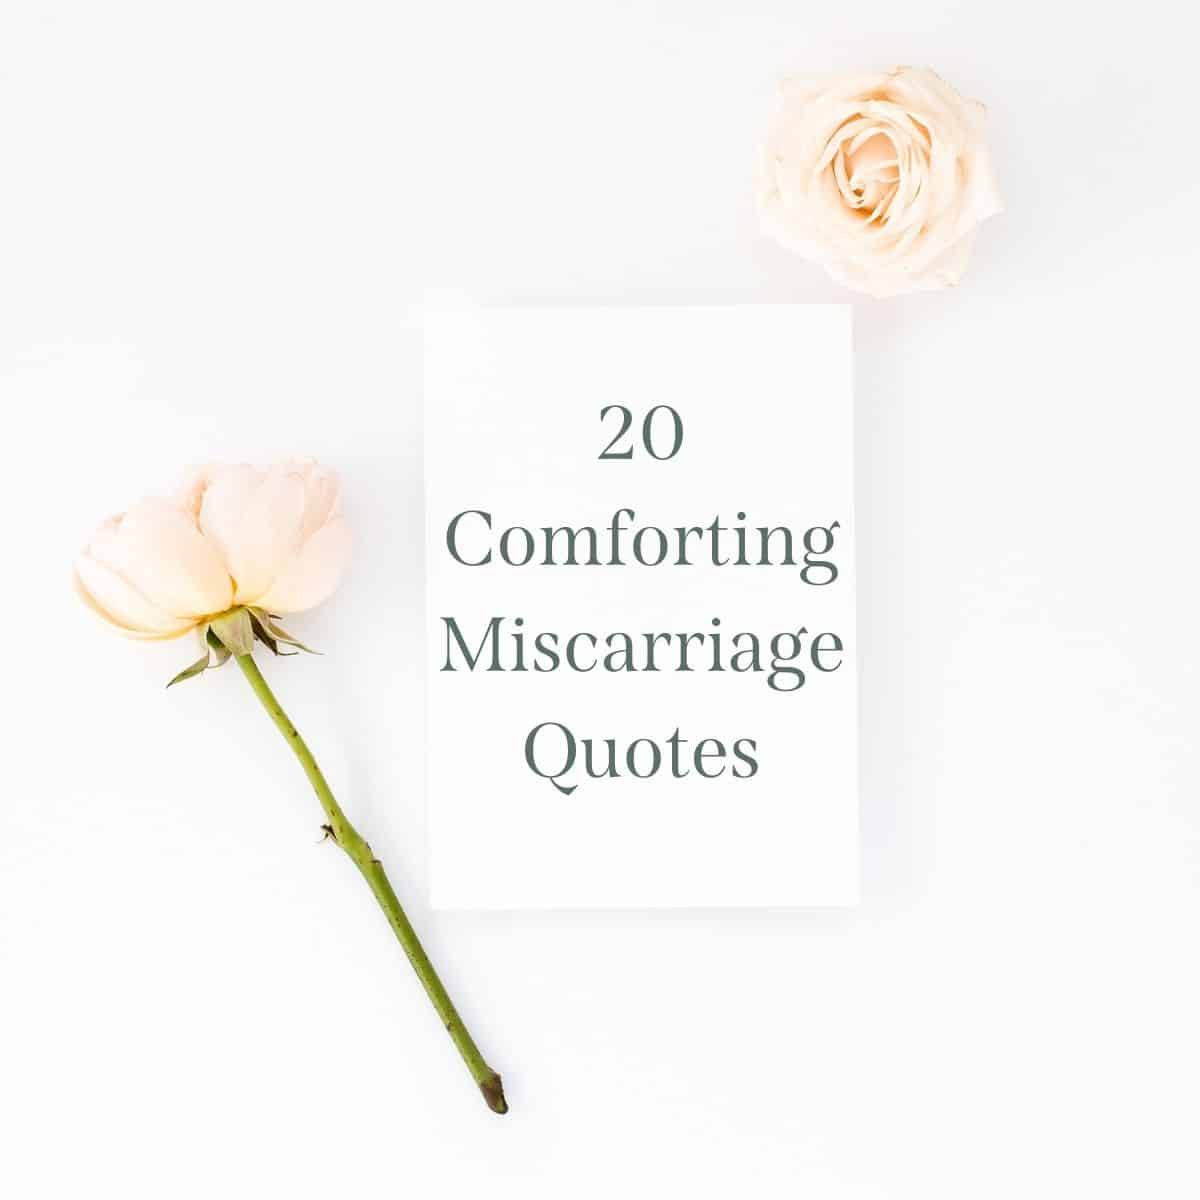 soft flowers with paper in the middle that says 20 comforting miscarriage quotes